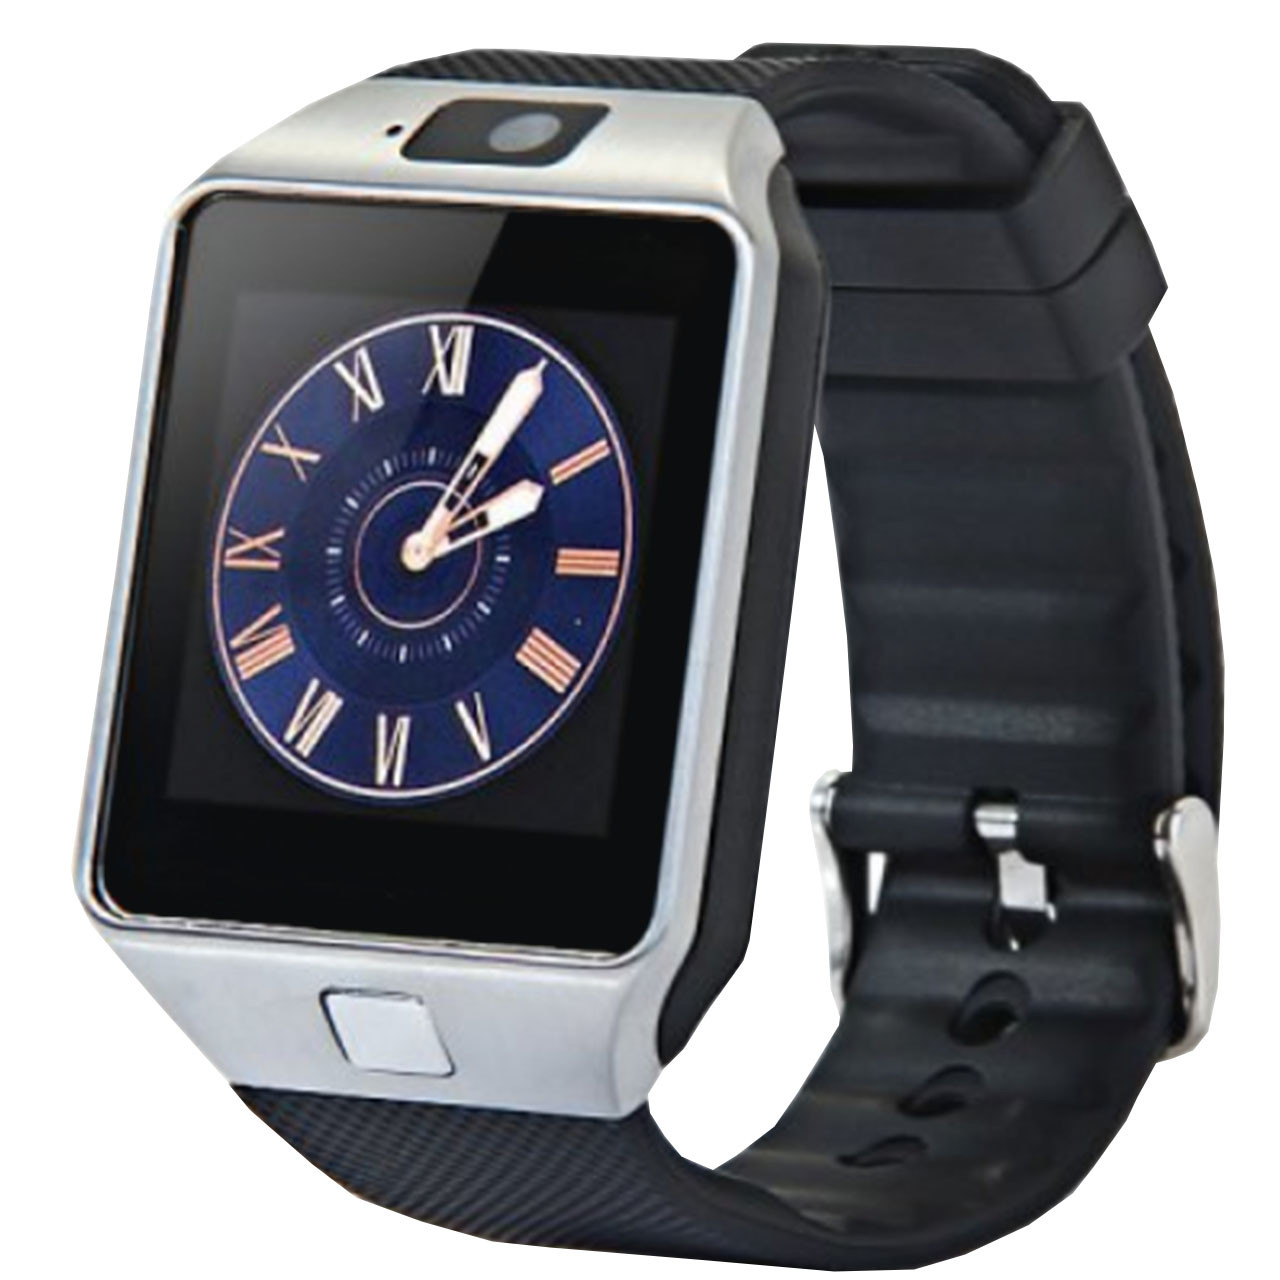 Smart watch DZ09 в Пскове